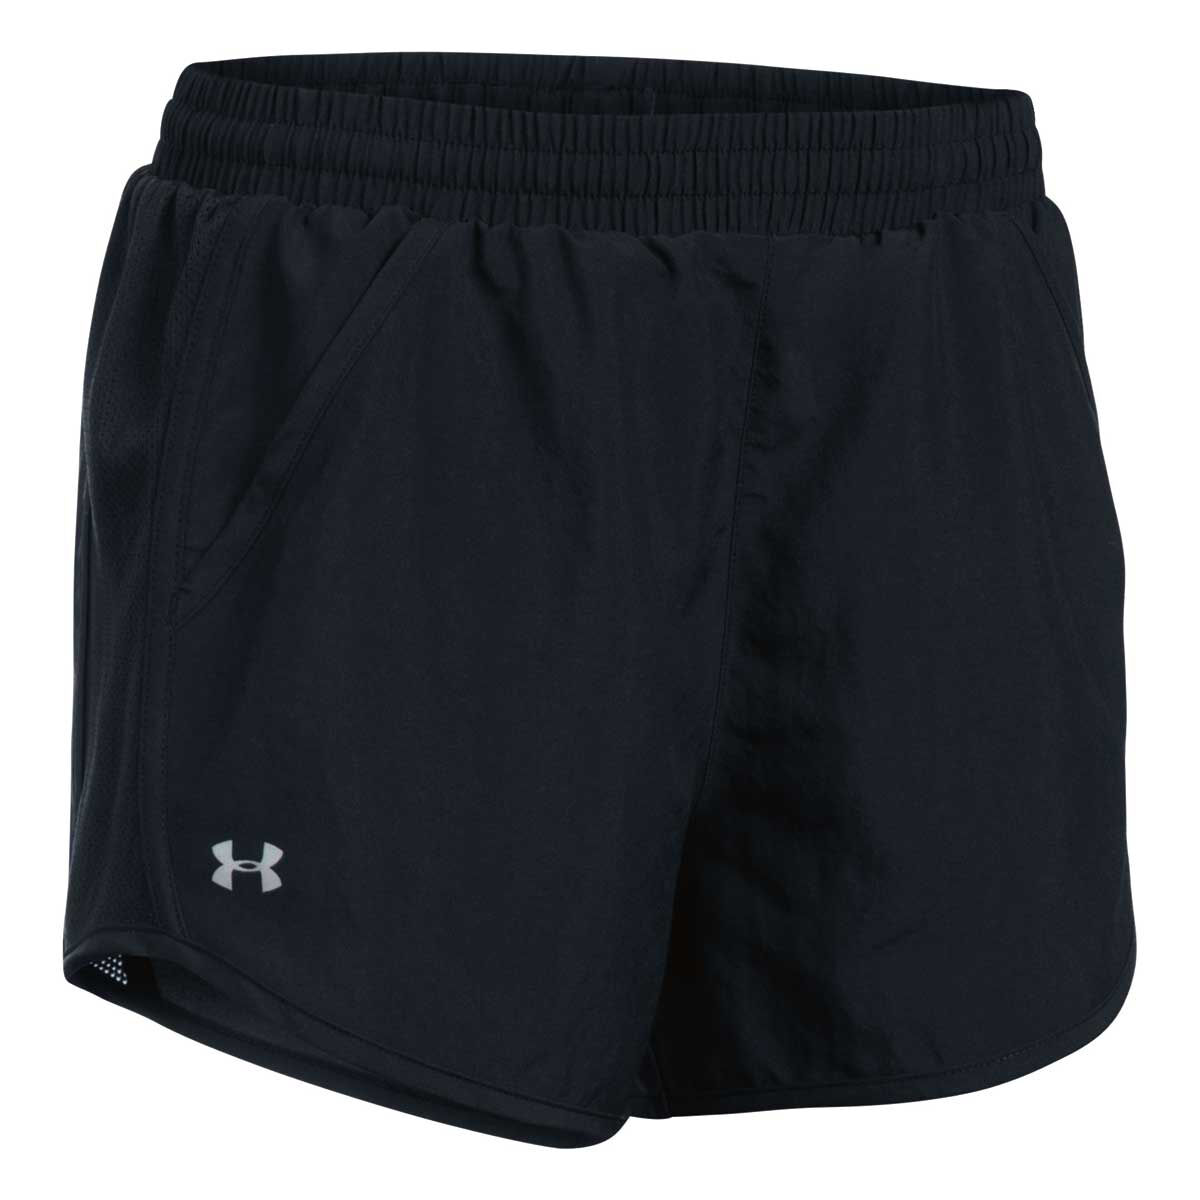 NWT Womens UNDER ARMOUR Navy Lime Green Performance Running Shorts Size LARGE